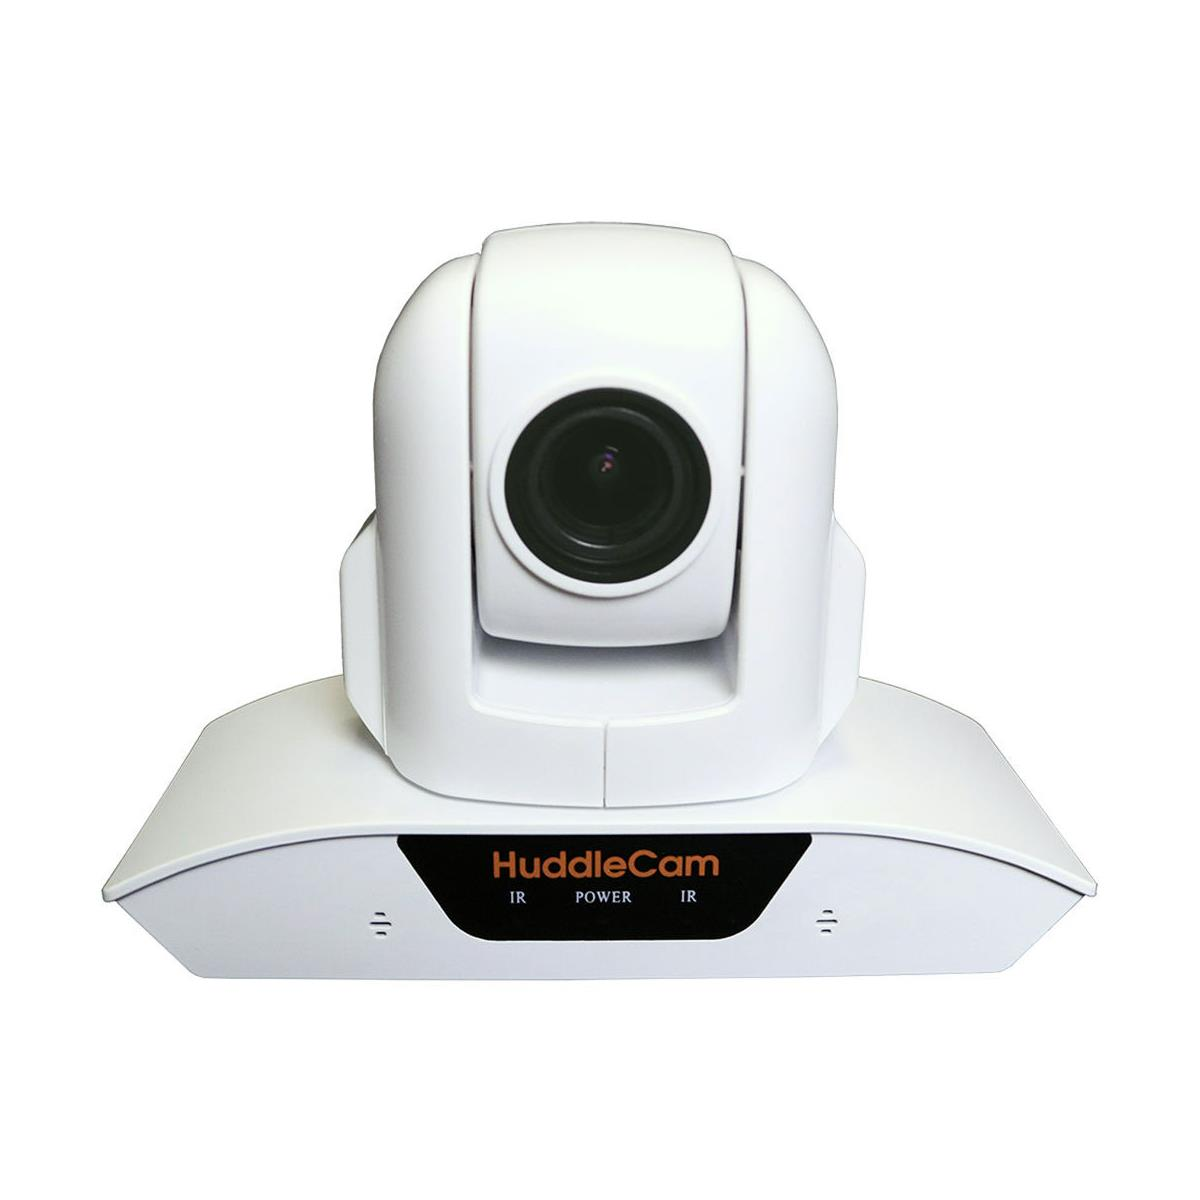 HuddleCamHD 10XA 2MP Camera with Built in Microphone, 10x Optical Zoom, f=4.9-49mm F2.0-2.8 Lens, 1920x1080, 30fps, White